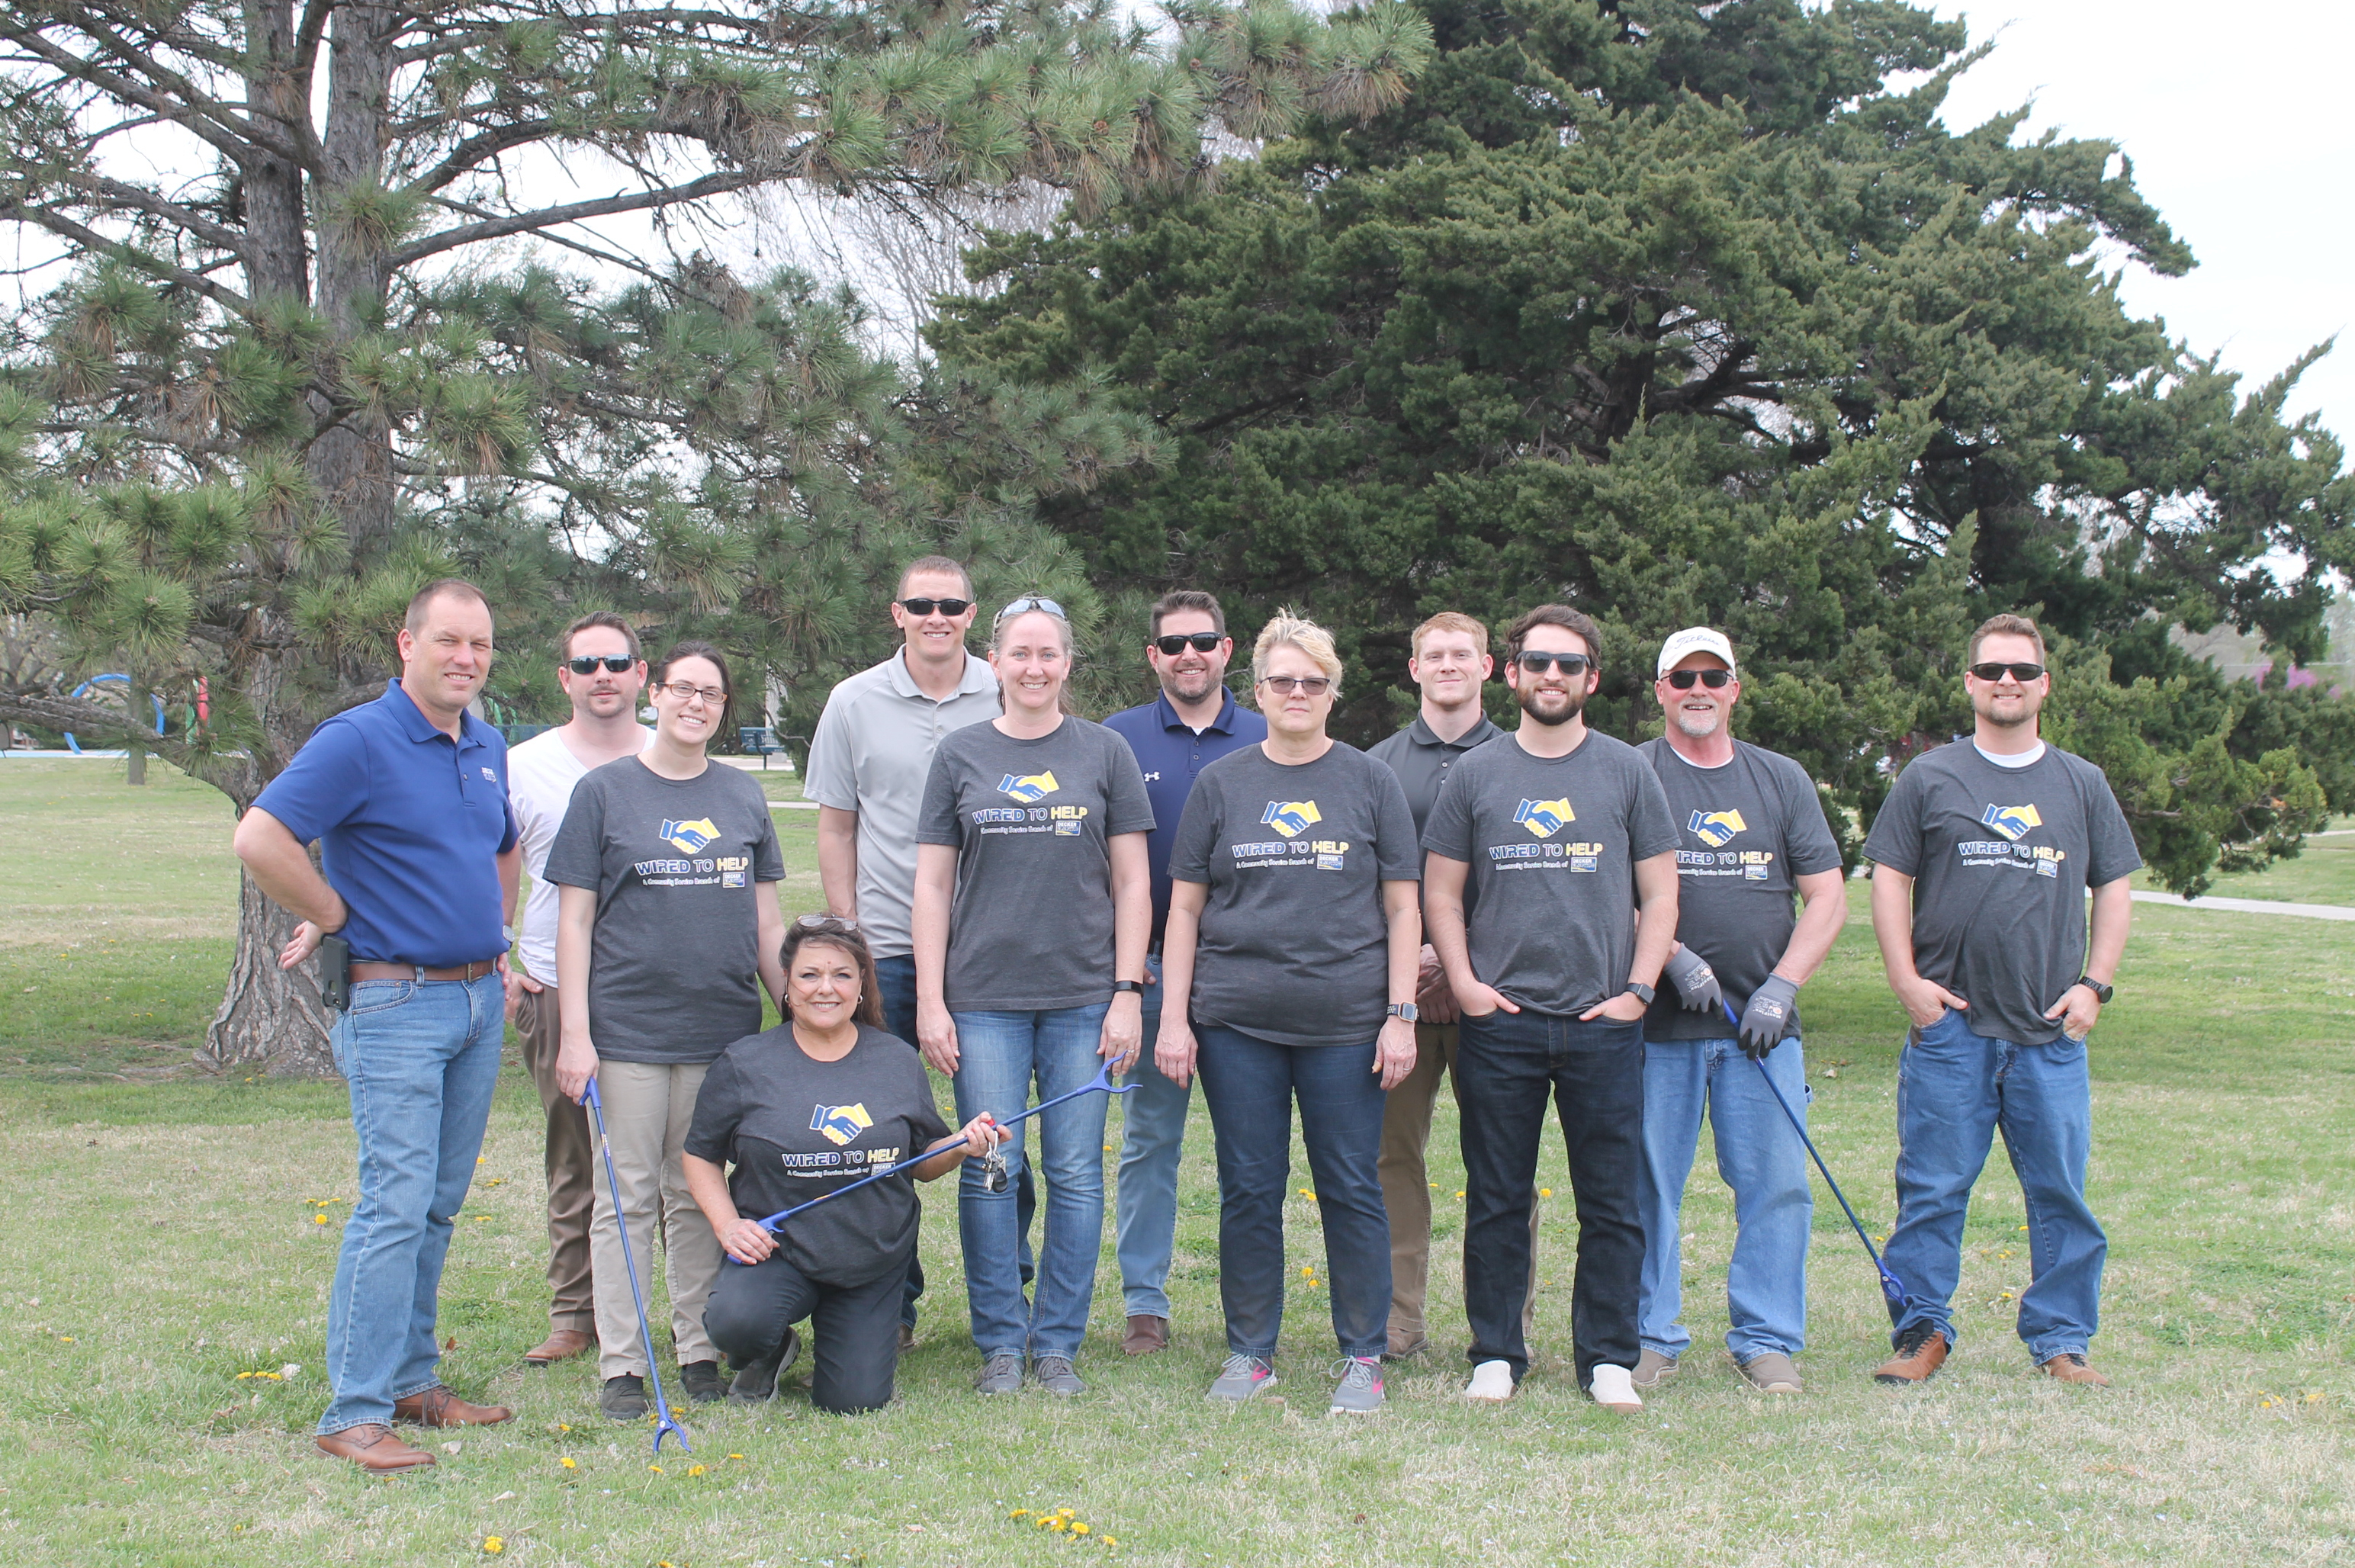 Osage Park Cleanup volunteers are Decker Electric staff